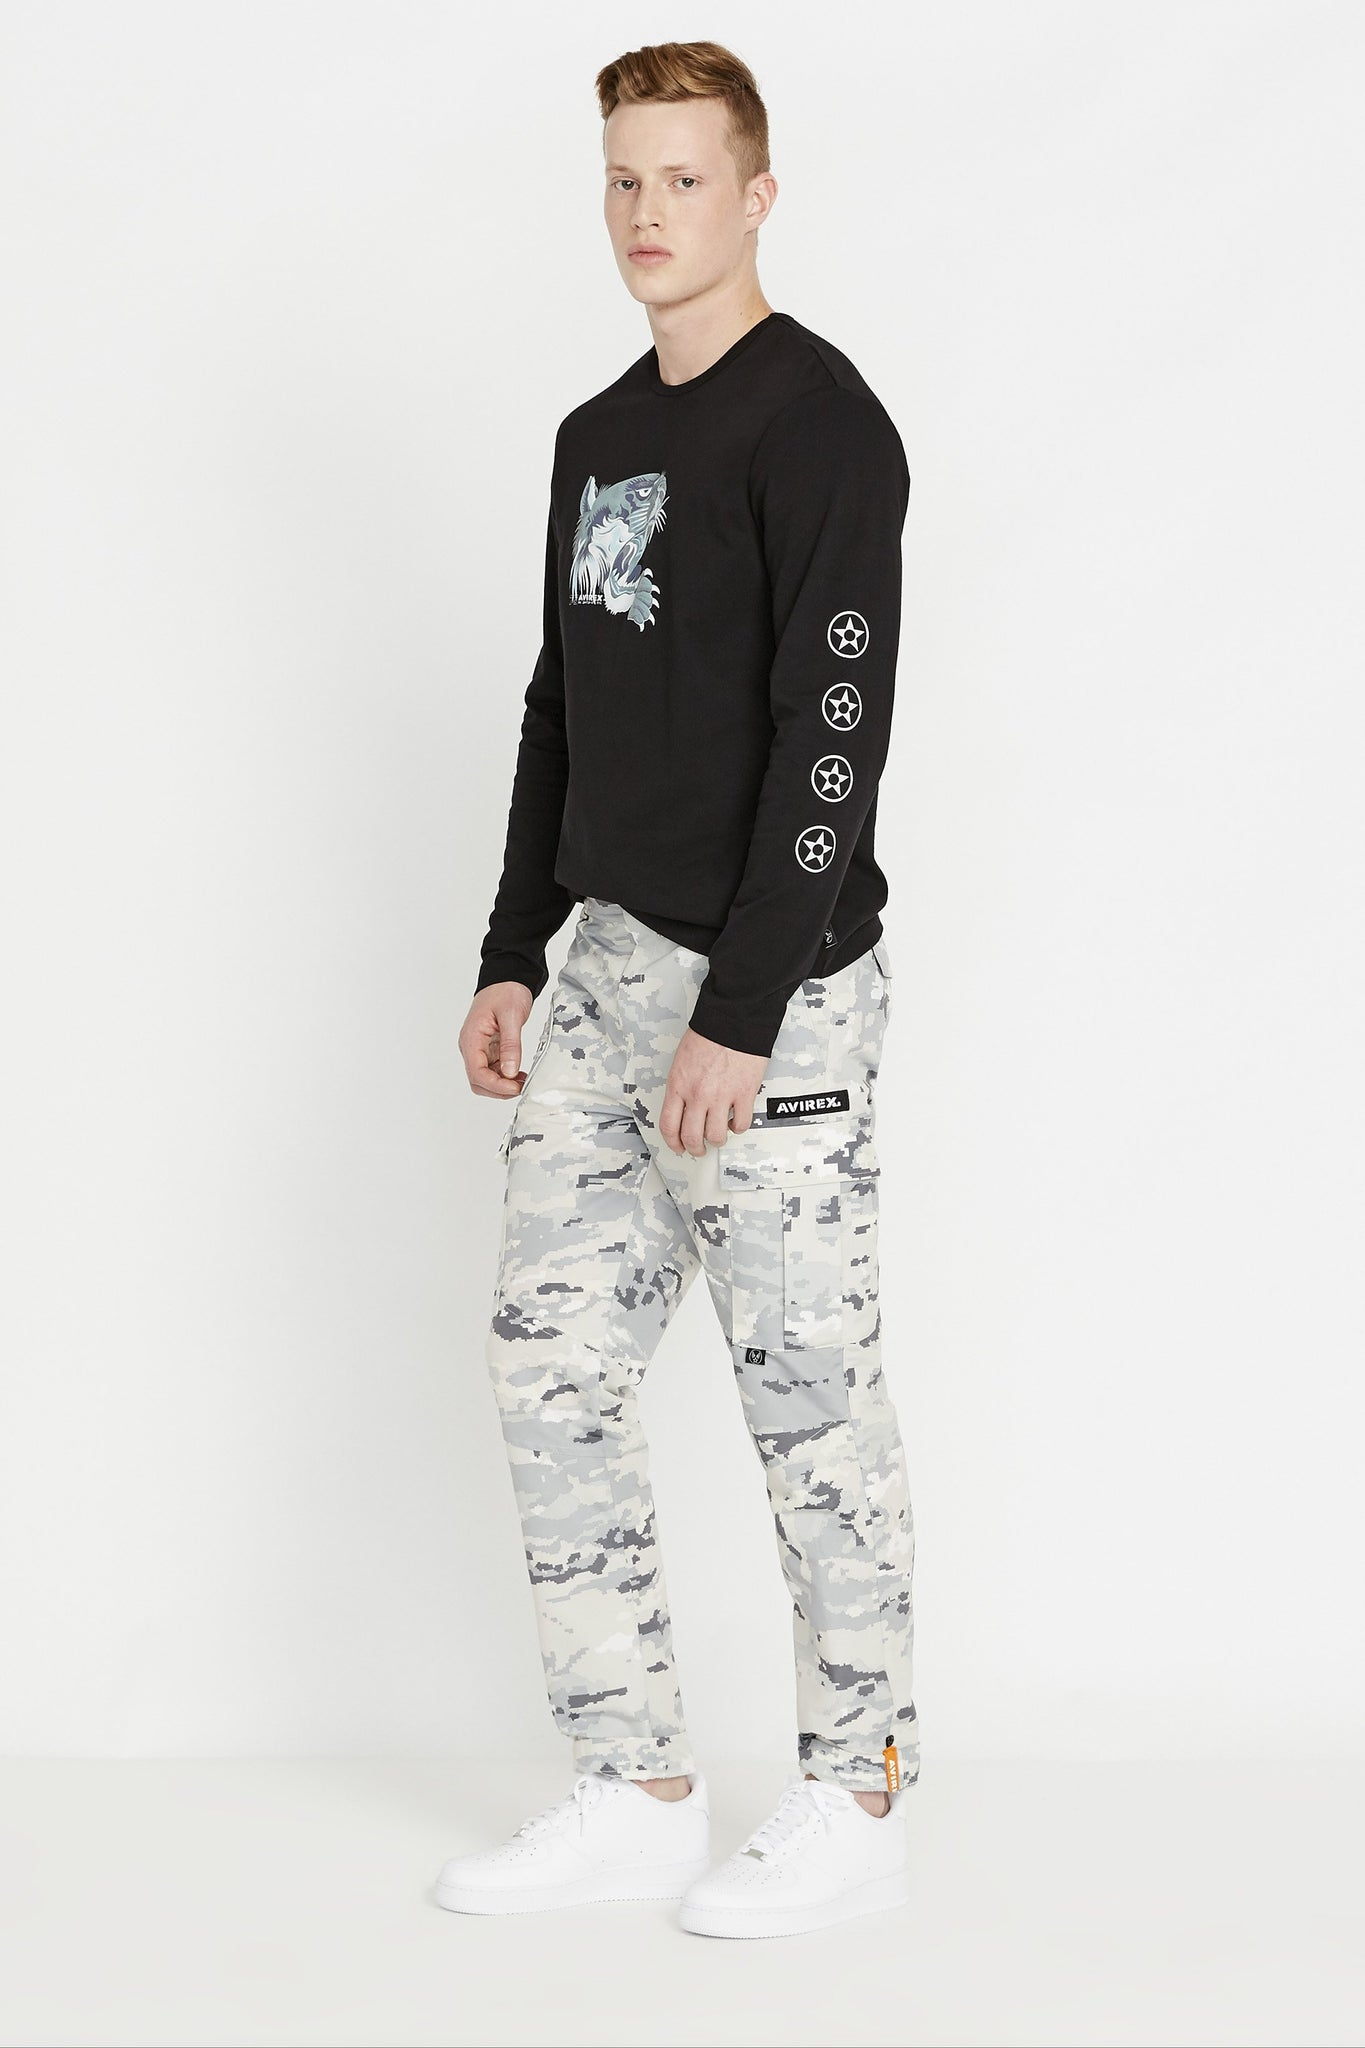 Side full view of men wearing a black long sleeve crew neck T-shirt with light grey tiger print on chest and label print on both sleeves and grey camo print pants